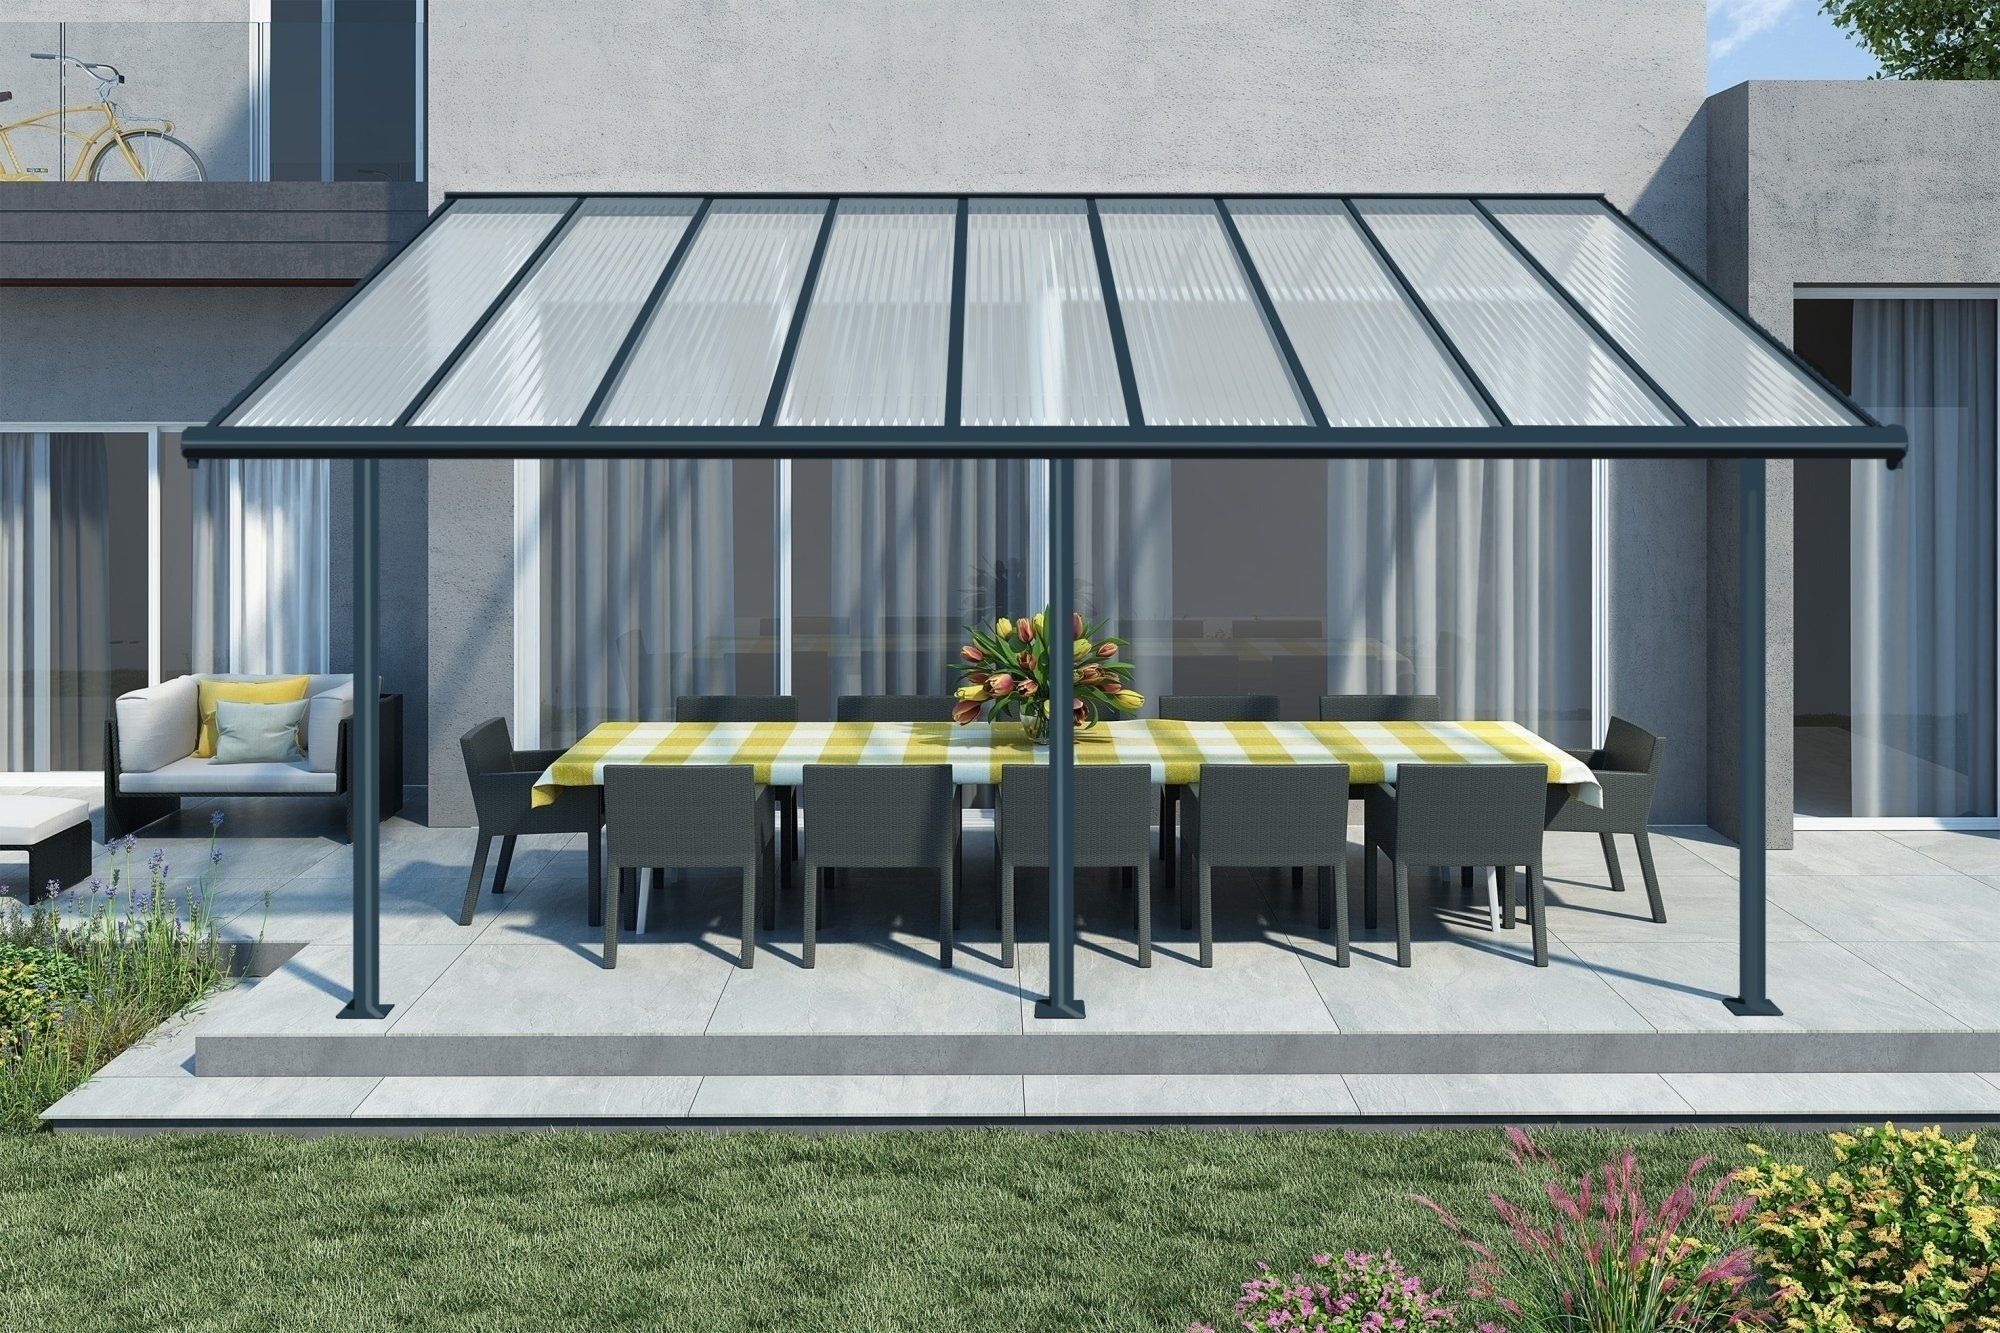 The Sierra Patio Cover Range By Palram Can Be The Perfect Addition